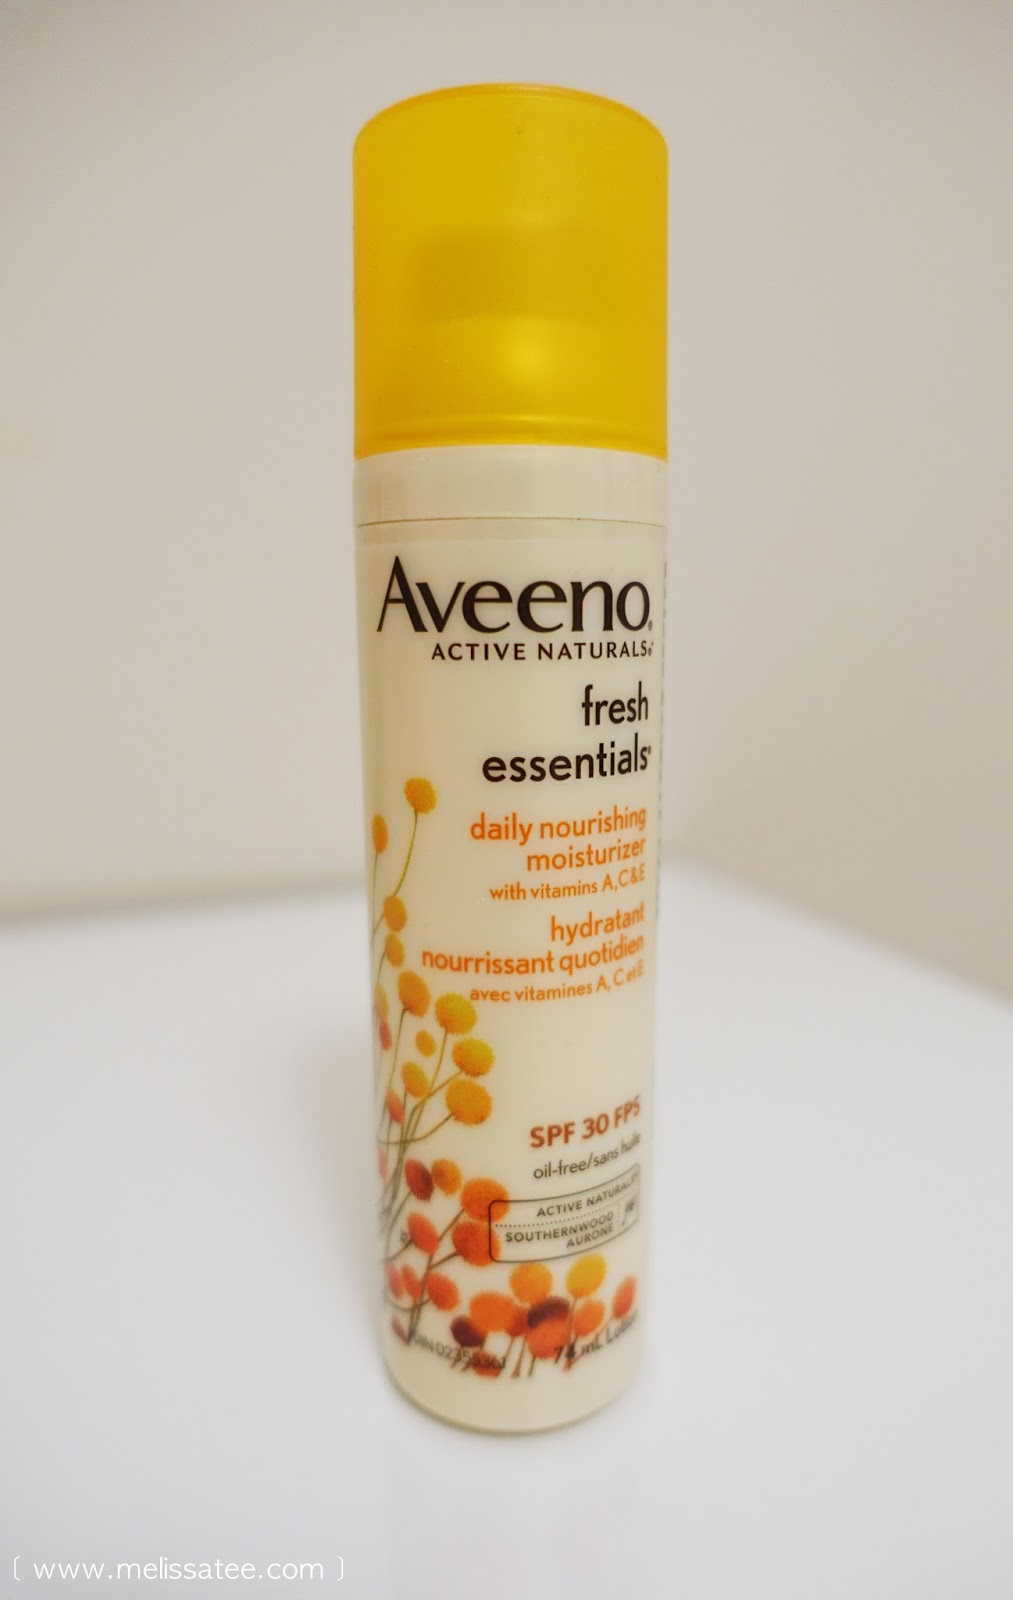 aveeno, aveeno fresh essentials, aveeno skincare, aveeno products, aveeno fresh essentials review, aveeno fresh essentials night cream, aveeno fresh essentials daily moisturizer, aveeno fresh essentials exfoliant